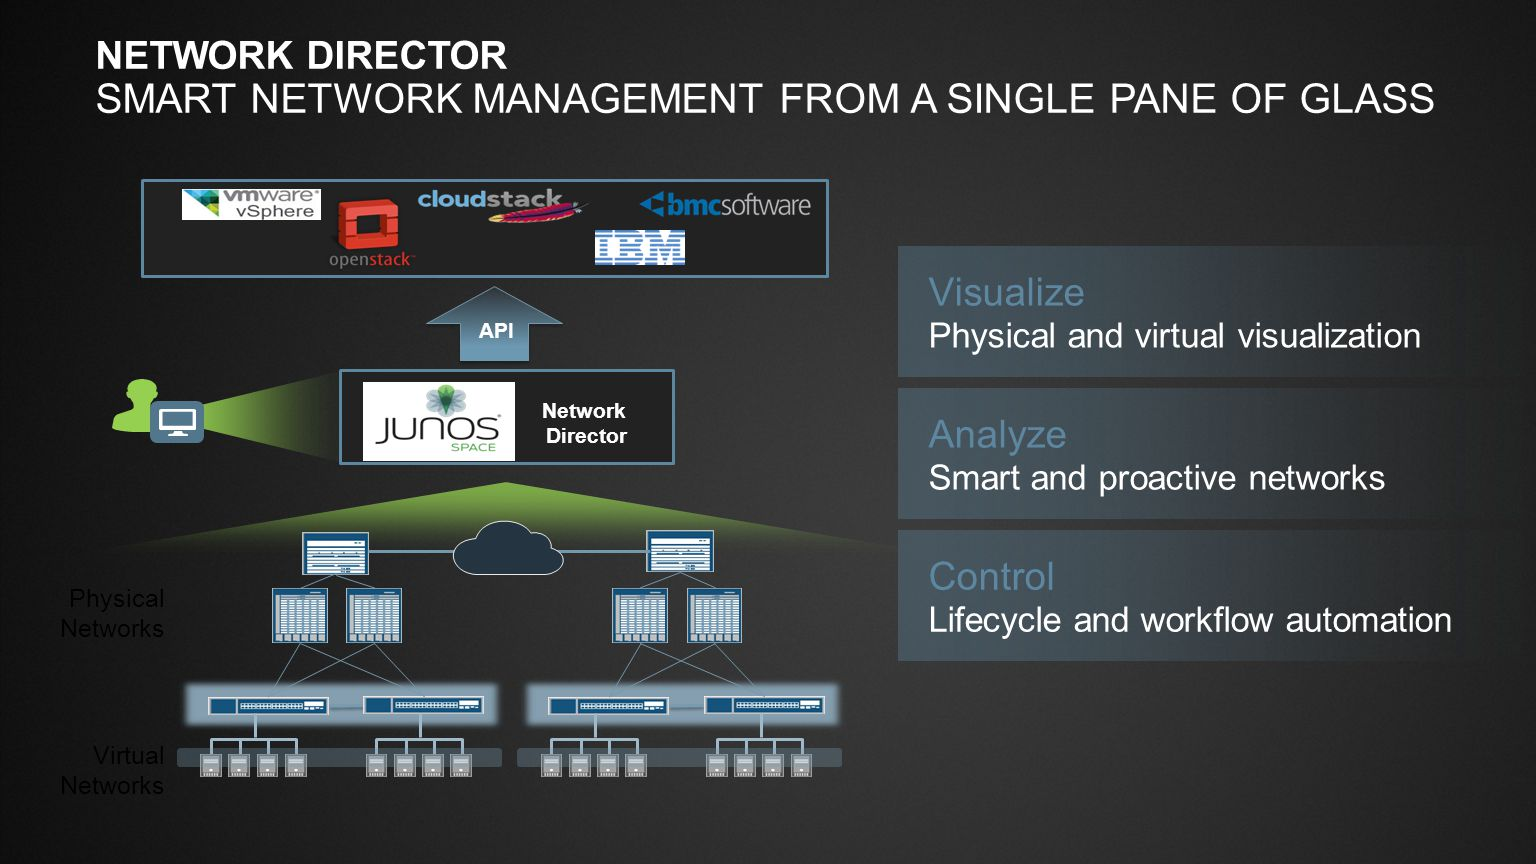 Slide Type Juniper Networks Large Venue Template / 16x9 / V6 Blank SlideTitle and Content 1-Line CONTRAIL SDN CONTROLLER SDN Controller ConfigurationAnalytics Control Virtualized Server VM Virtualized Server VM IP fabric (underlay network) Juniper Qfabric/QFX/EX or 3 rd party underlay switches Juniper MX or 3 rd party gateway routers Tenant VMs BGP Federation Horizontally scalable Highly available Federated BGP Clustering JunosV Contrail Controller KVM Hypervisor + JunosV Contrail vRouter/Agent (L2 & L3) REST XMPP MPLS over GRE or VXLAN SDN CONTROLLER Control Orchestrator OVERLAY ARCHITECTURE XMPP BGP + Netconf